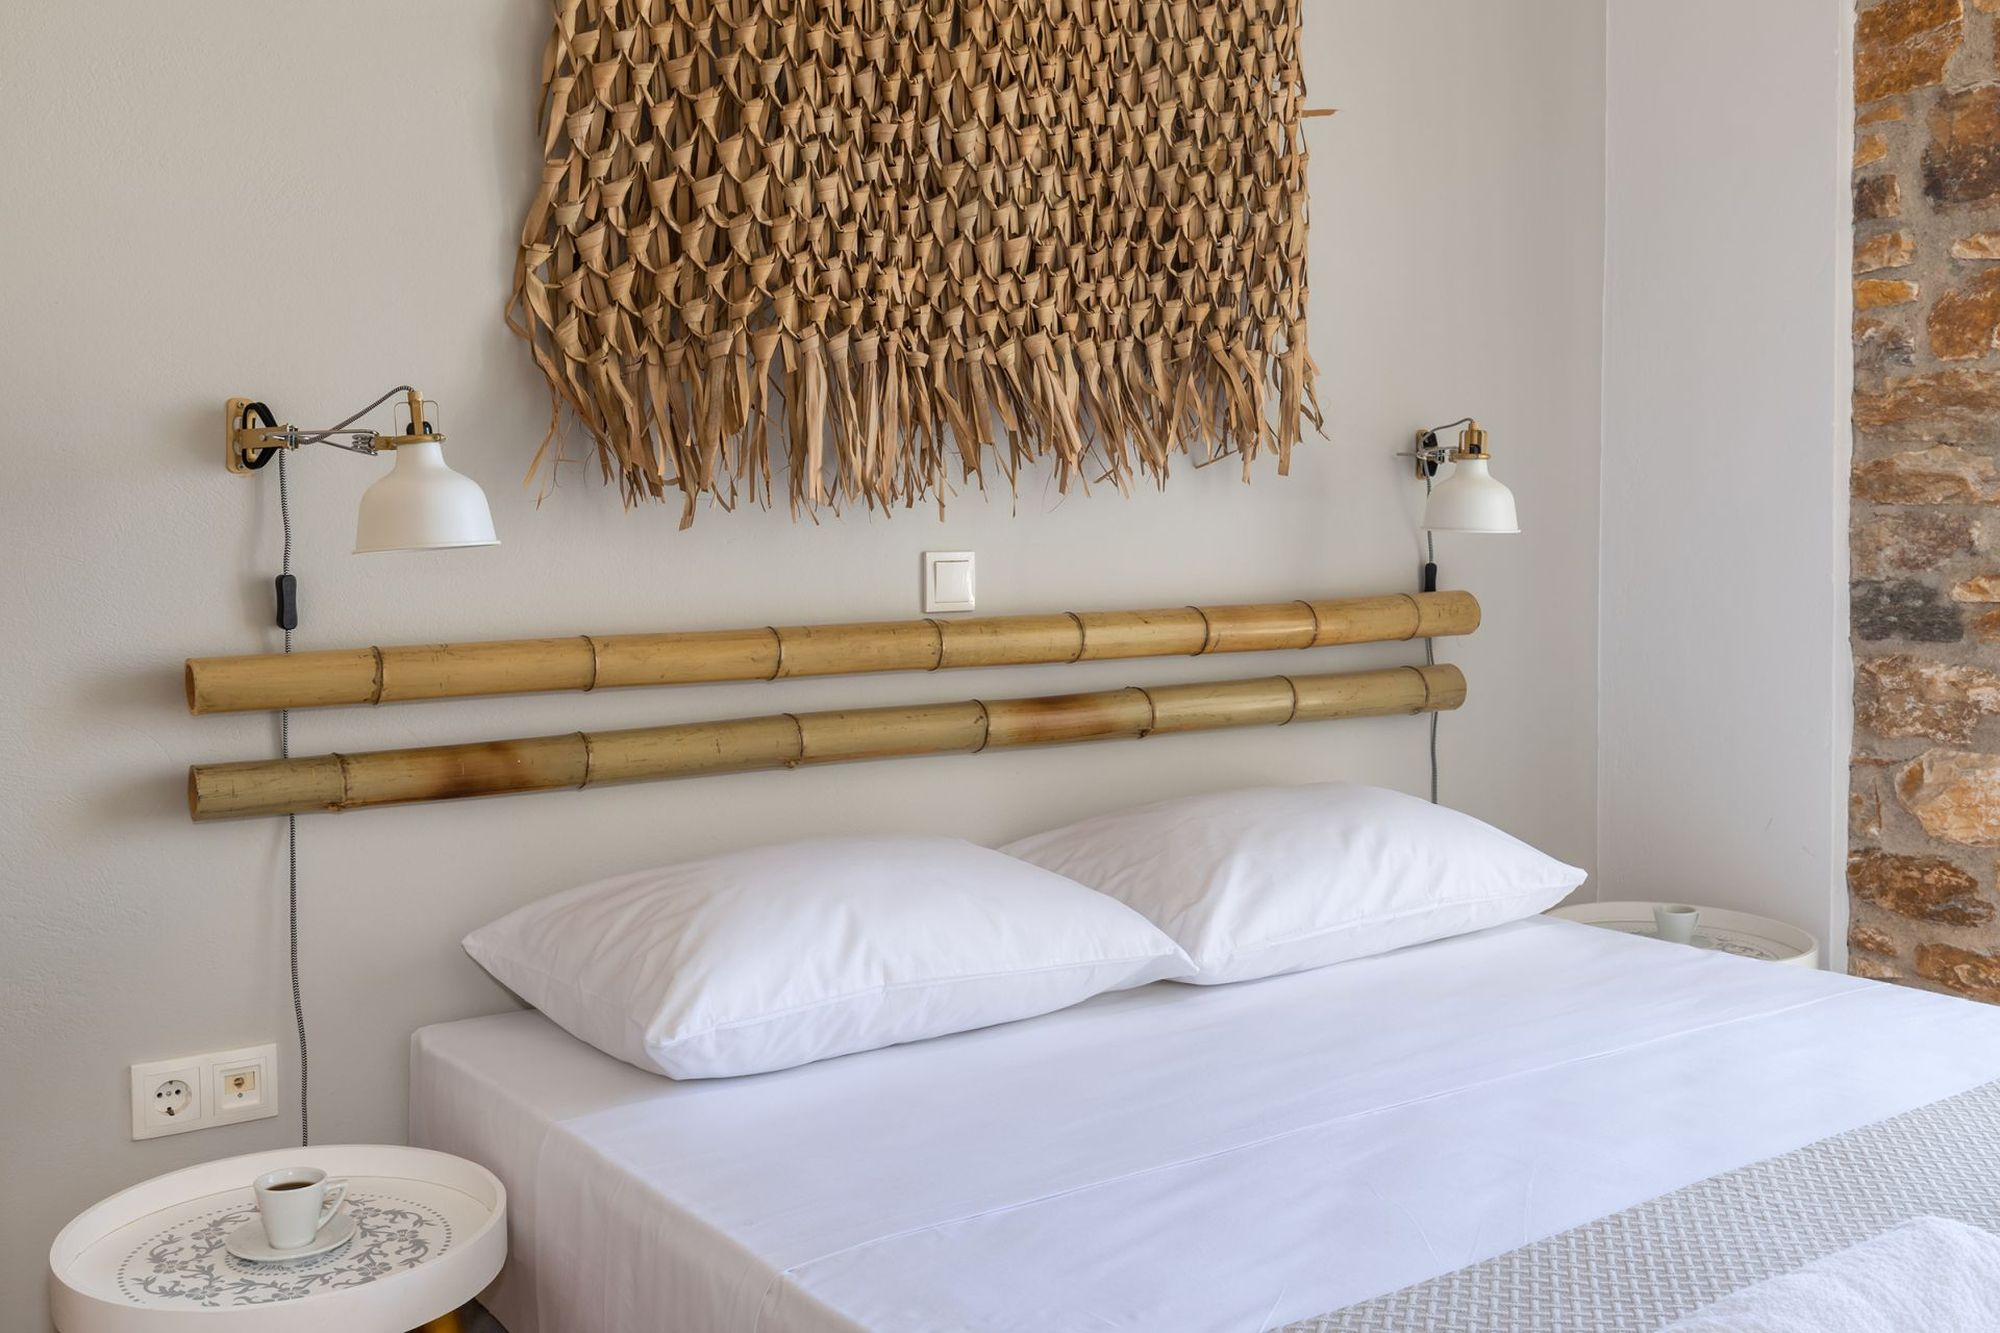 A double bed with white sheets in a stone-built bedroom, two white bedside tables, two gold-white wall lights and the wall over the bed is decorated with bamboo masts and a wicker decorative element.